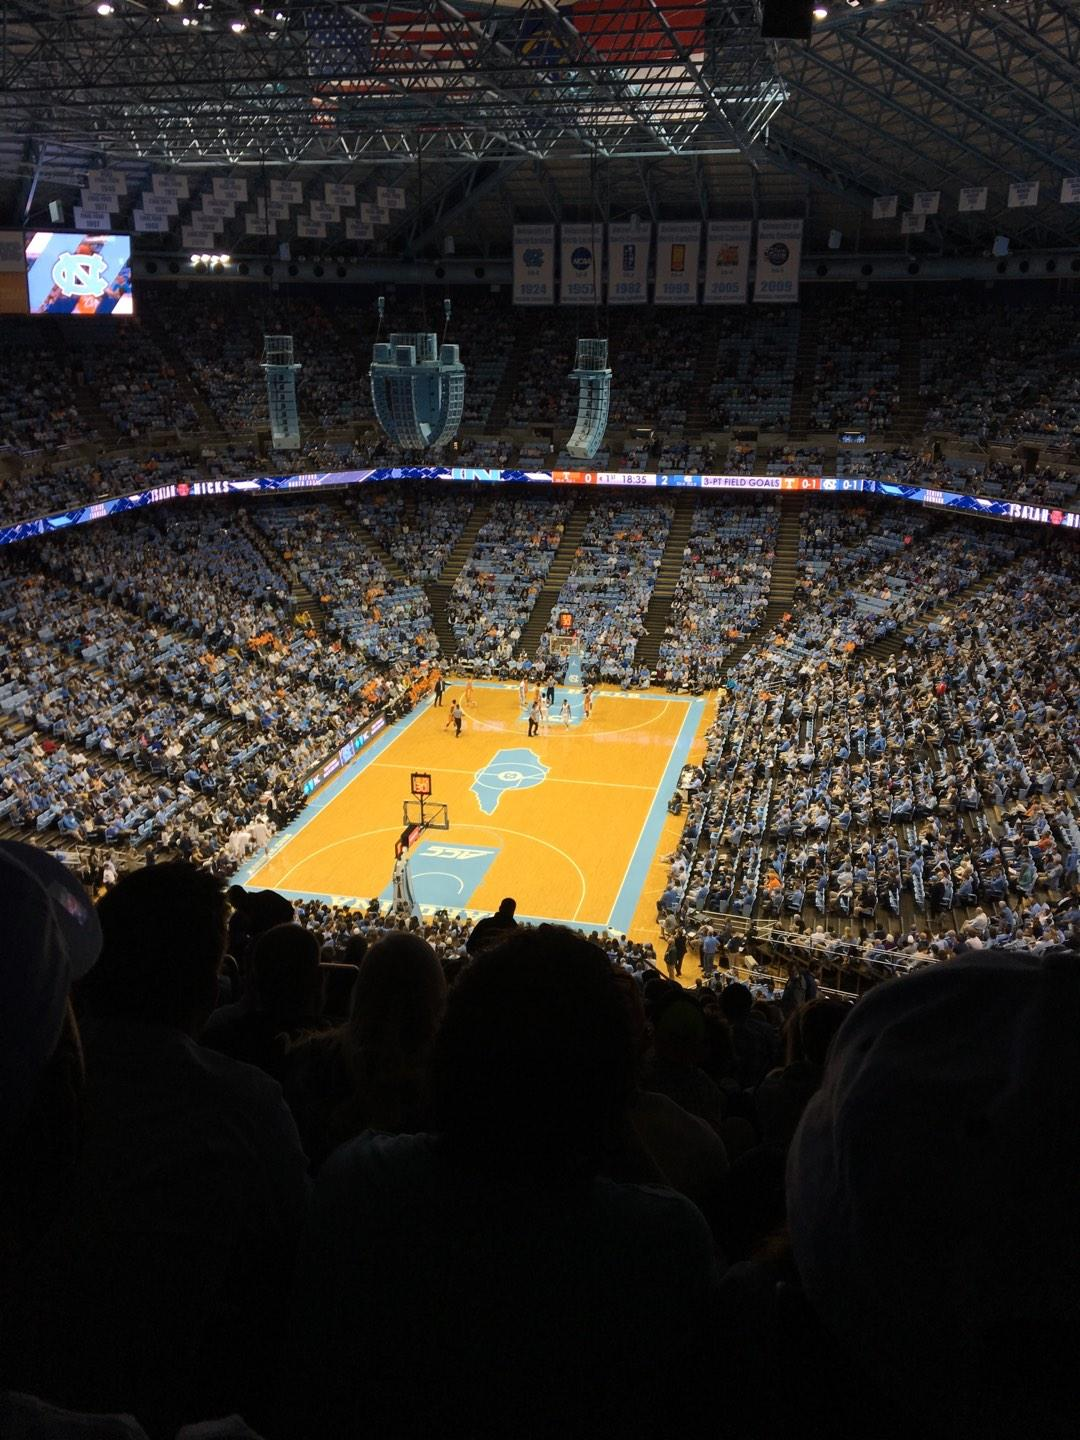 Dean Dome Section 219 Row X Seat 9